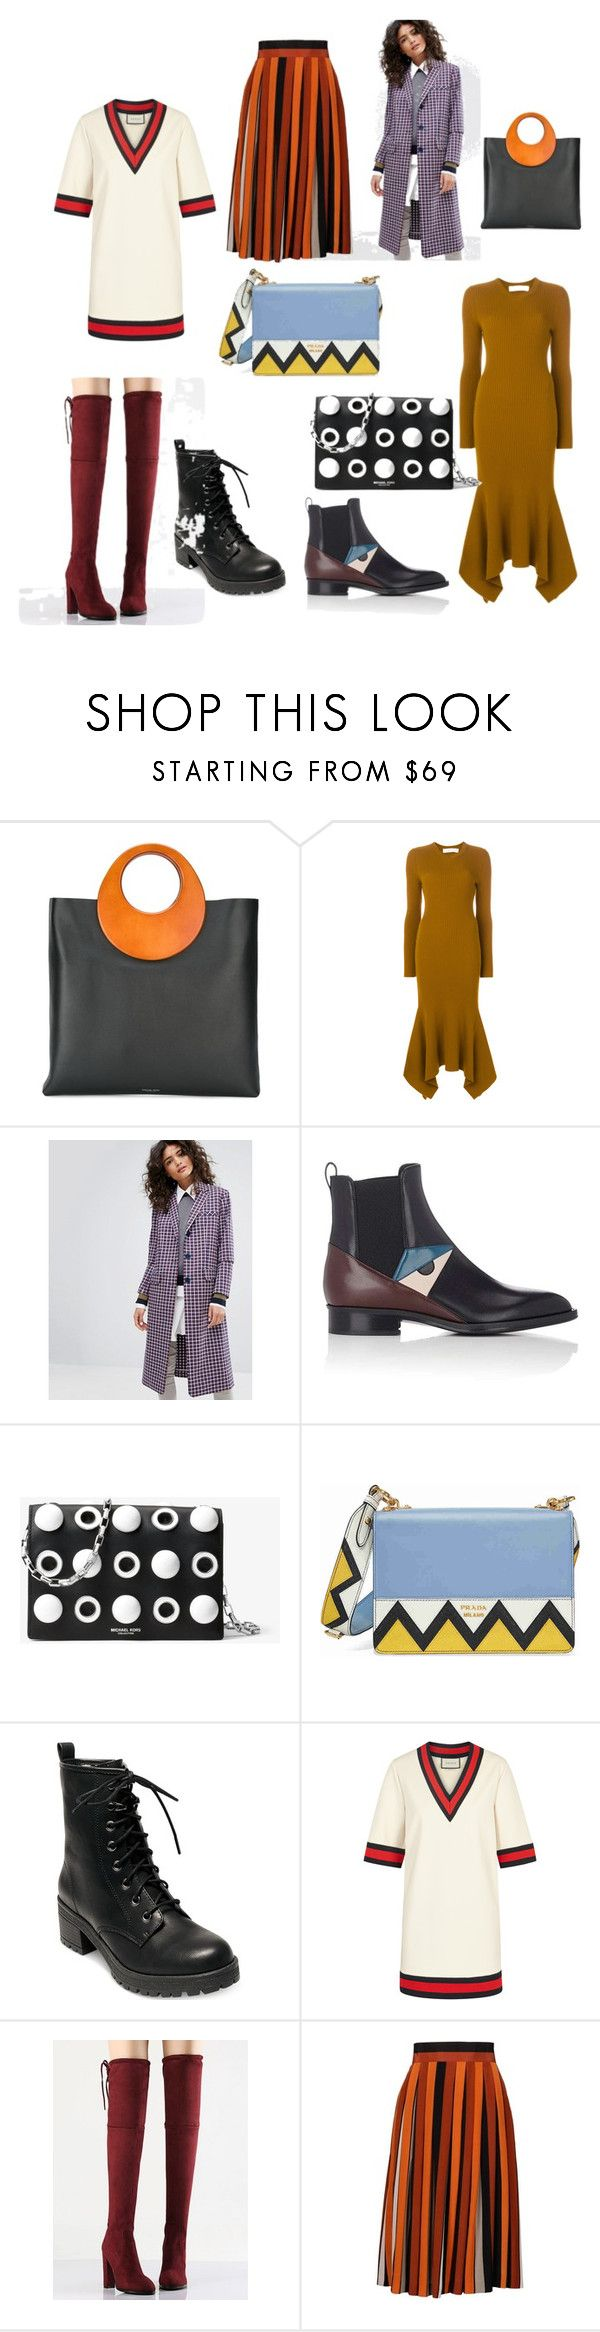 """шоппинг лист"" by lipatkinaiv ❤ liked on Polyvore featuring Michael Kors, Victoria Beckham, Sonia by Sonia Rykiel, Fendi, Prada, Madden Girl, Gucci, WithChic and Givenchy"